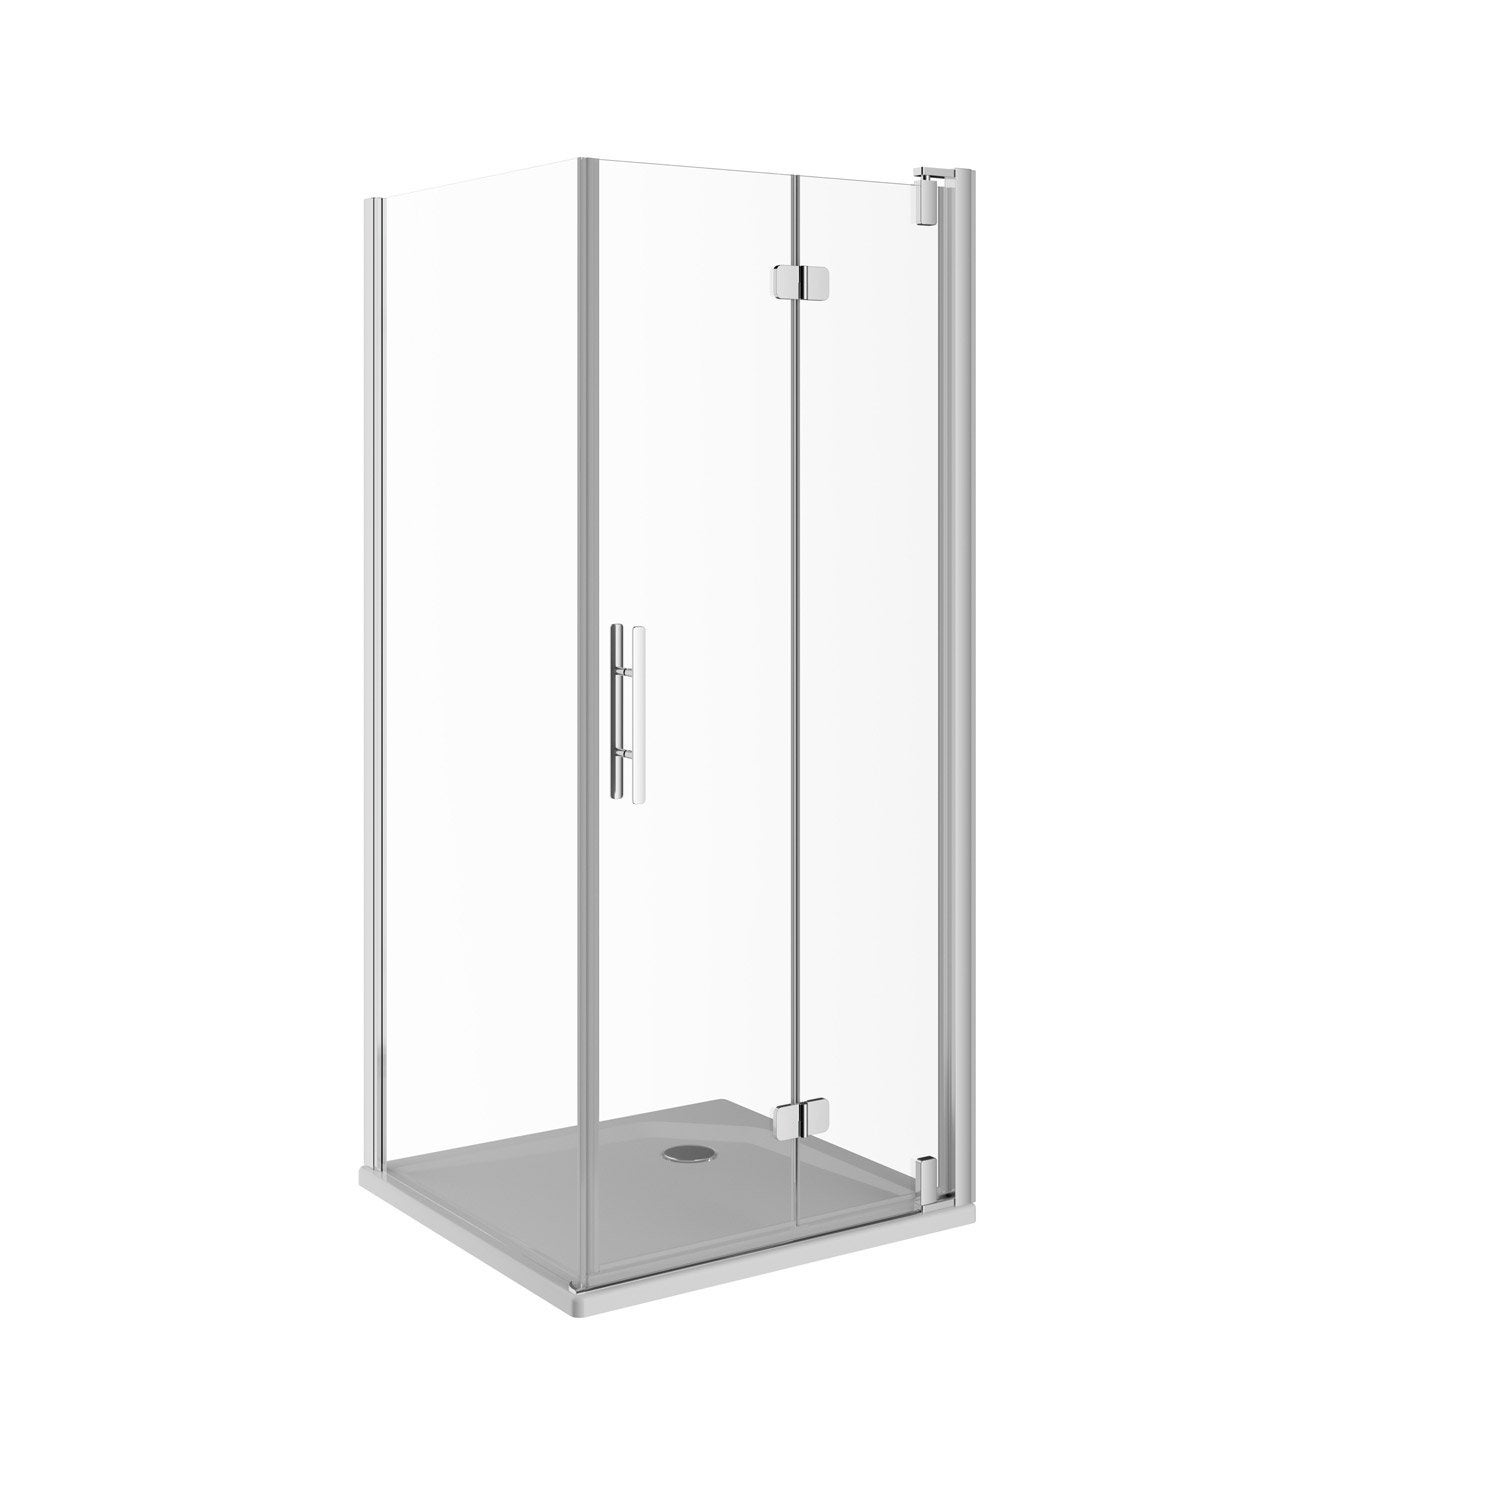 porte de douche pivot pliante 99 cm transparent adena leroy merlin. Black Bedroom Furniture Sets. Home Design Ideas